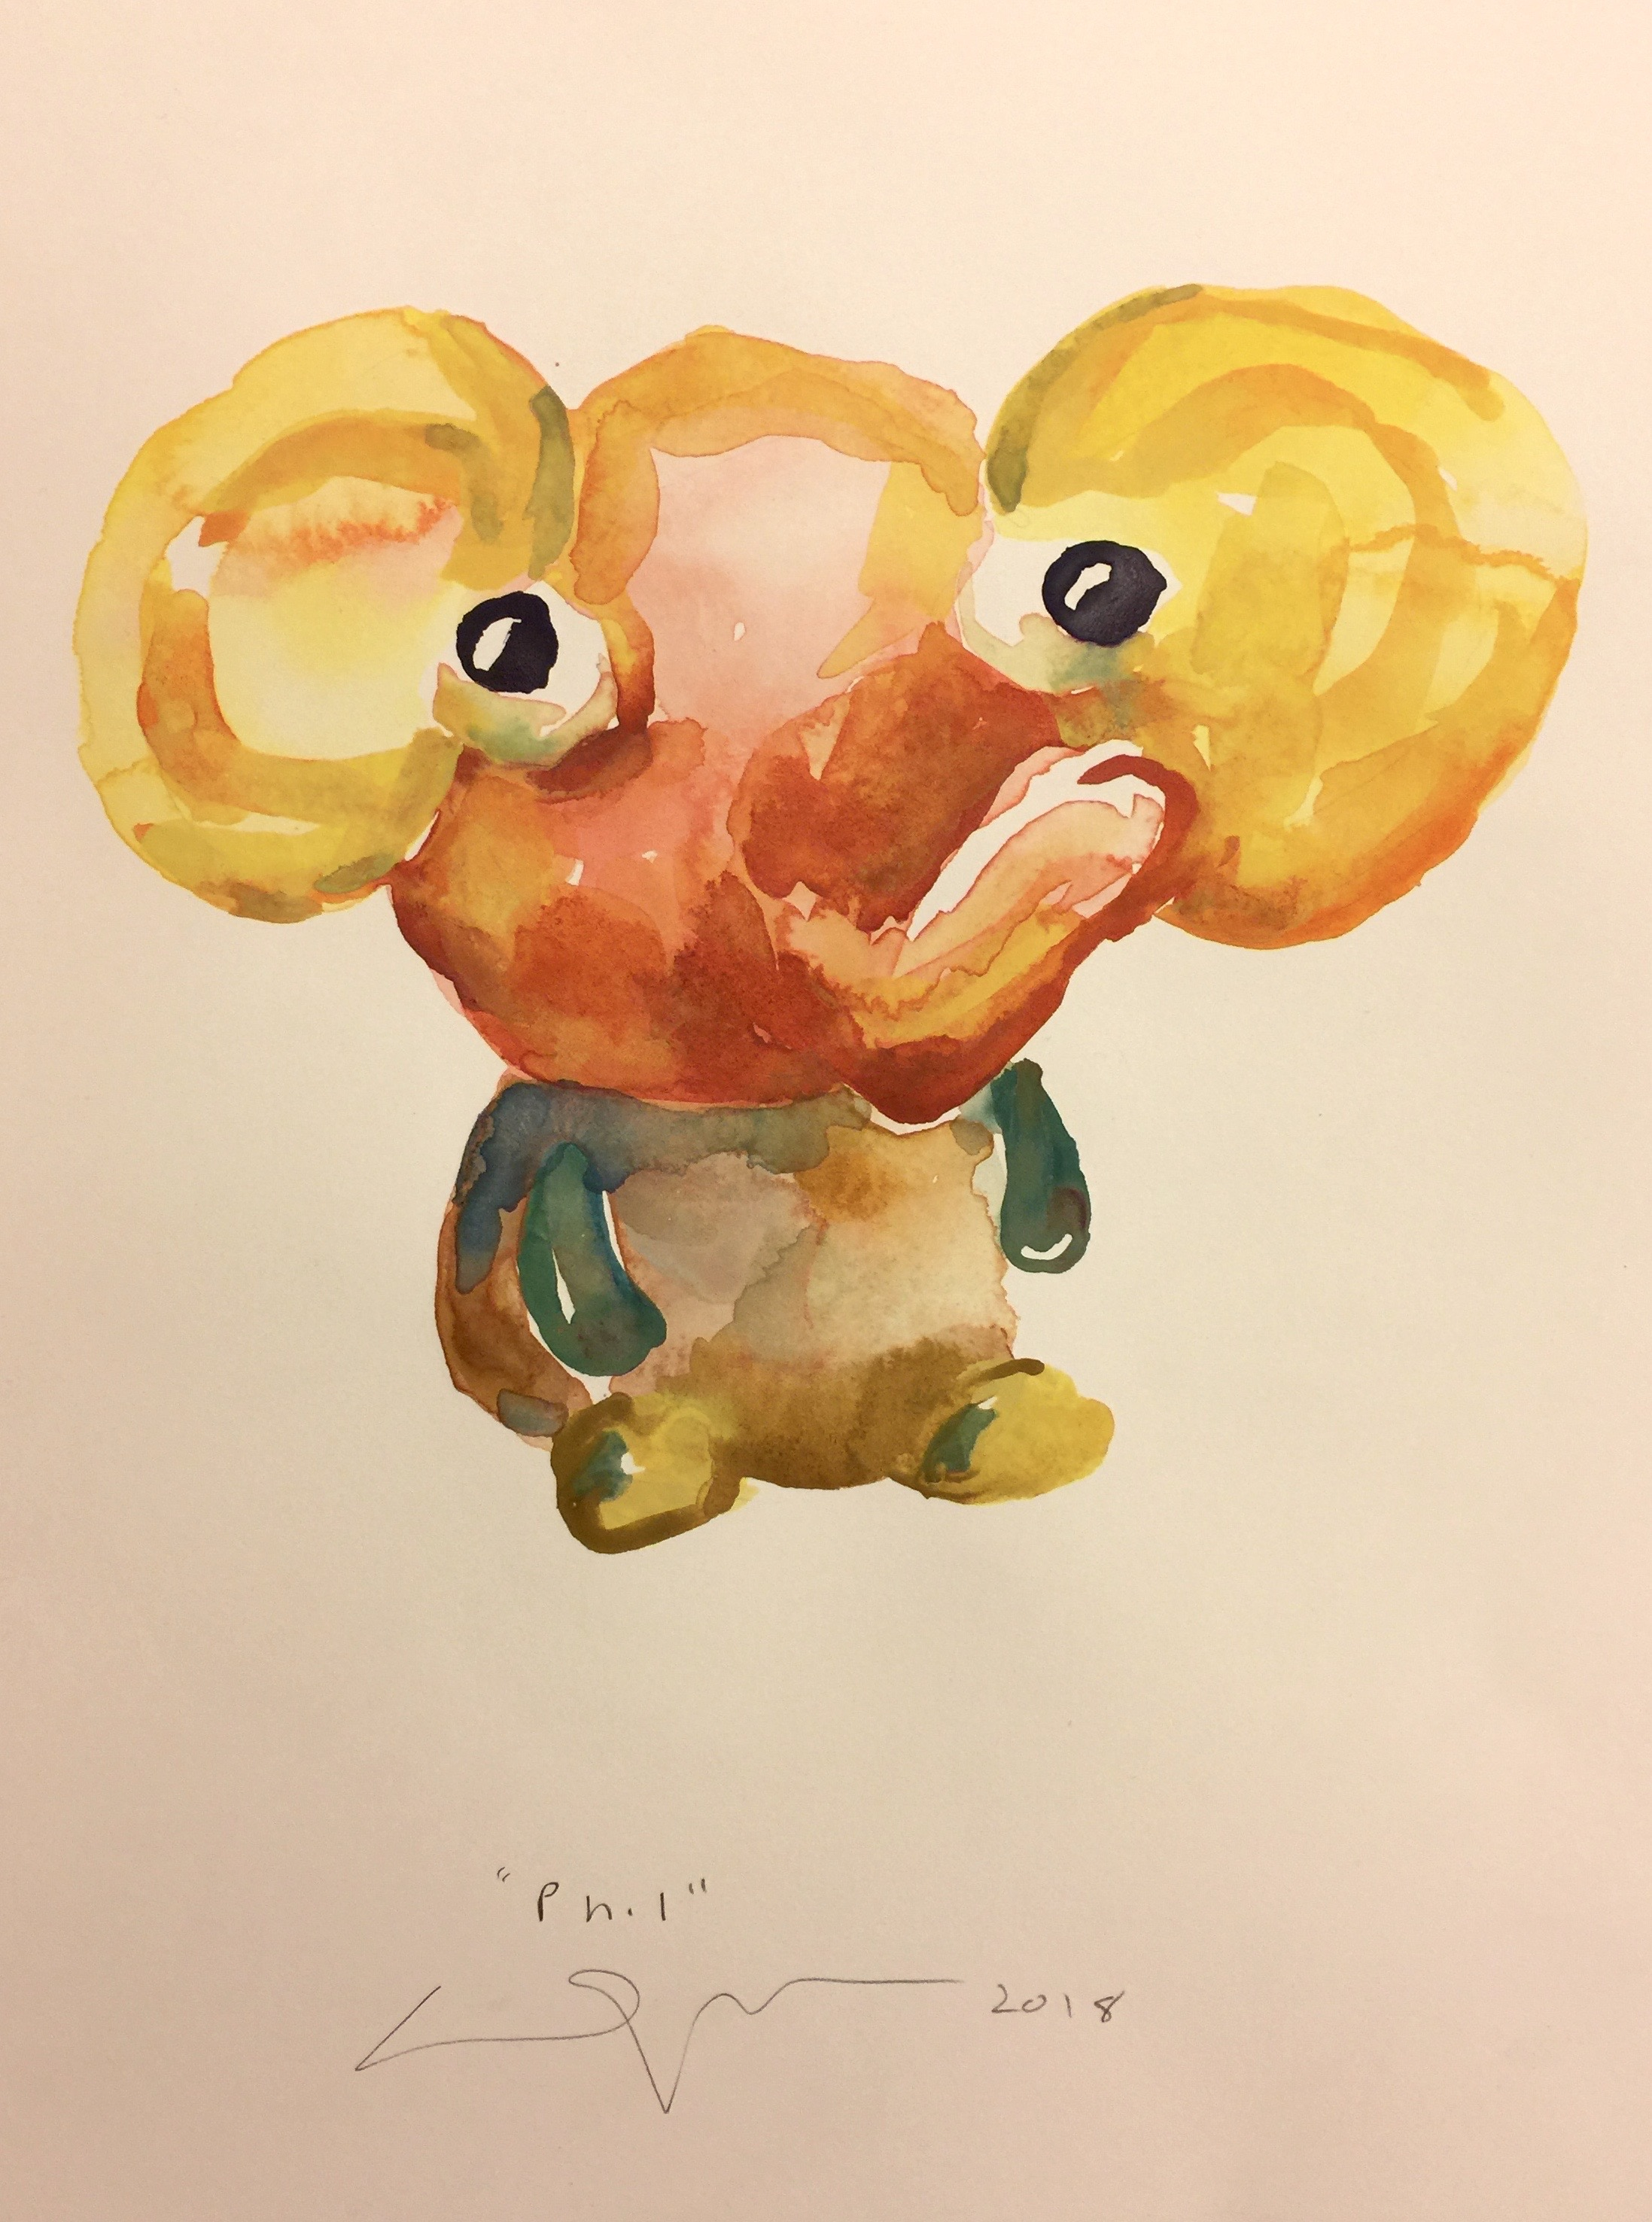 Peter Opheim   Pepe   2018  Watercolor on paper  Signed, titled, and dated by the artist in pencil  Sheet: 16 x 12 inches  Framed: 17 x 13 inches